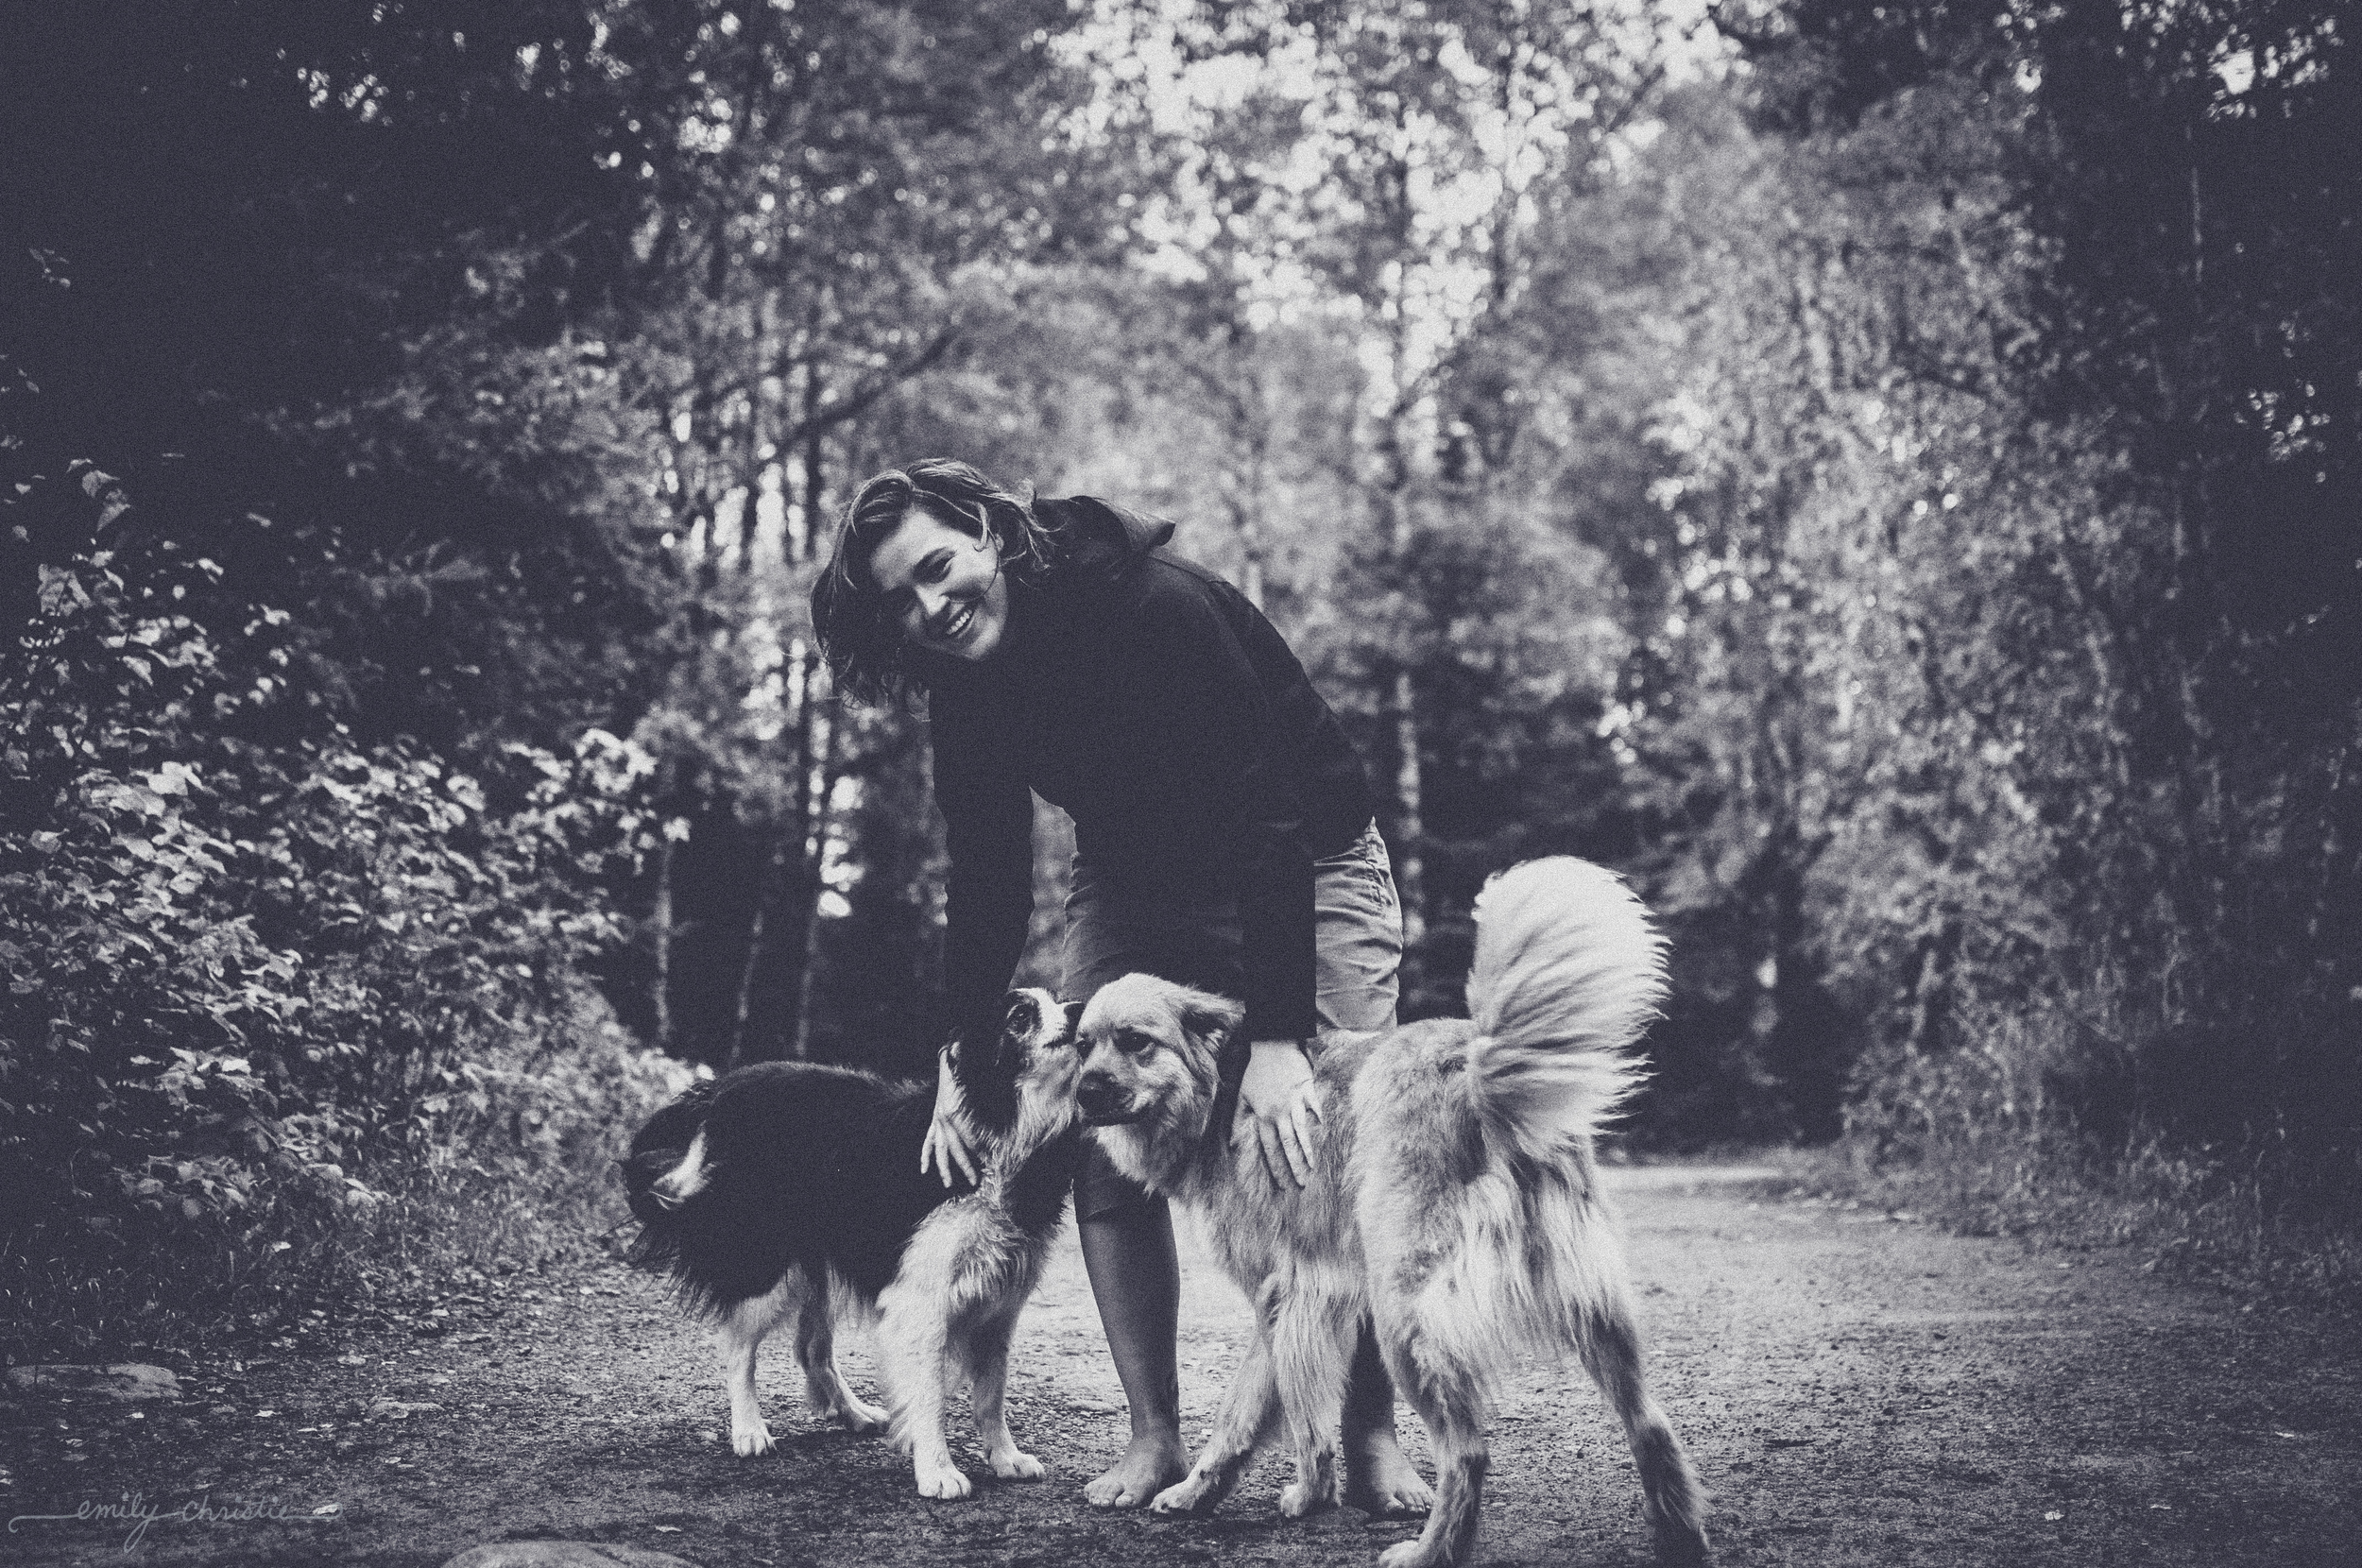 Brooke with the dogs (Islay and Sumac)